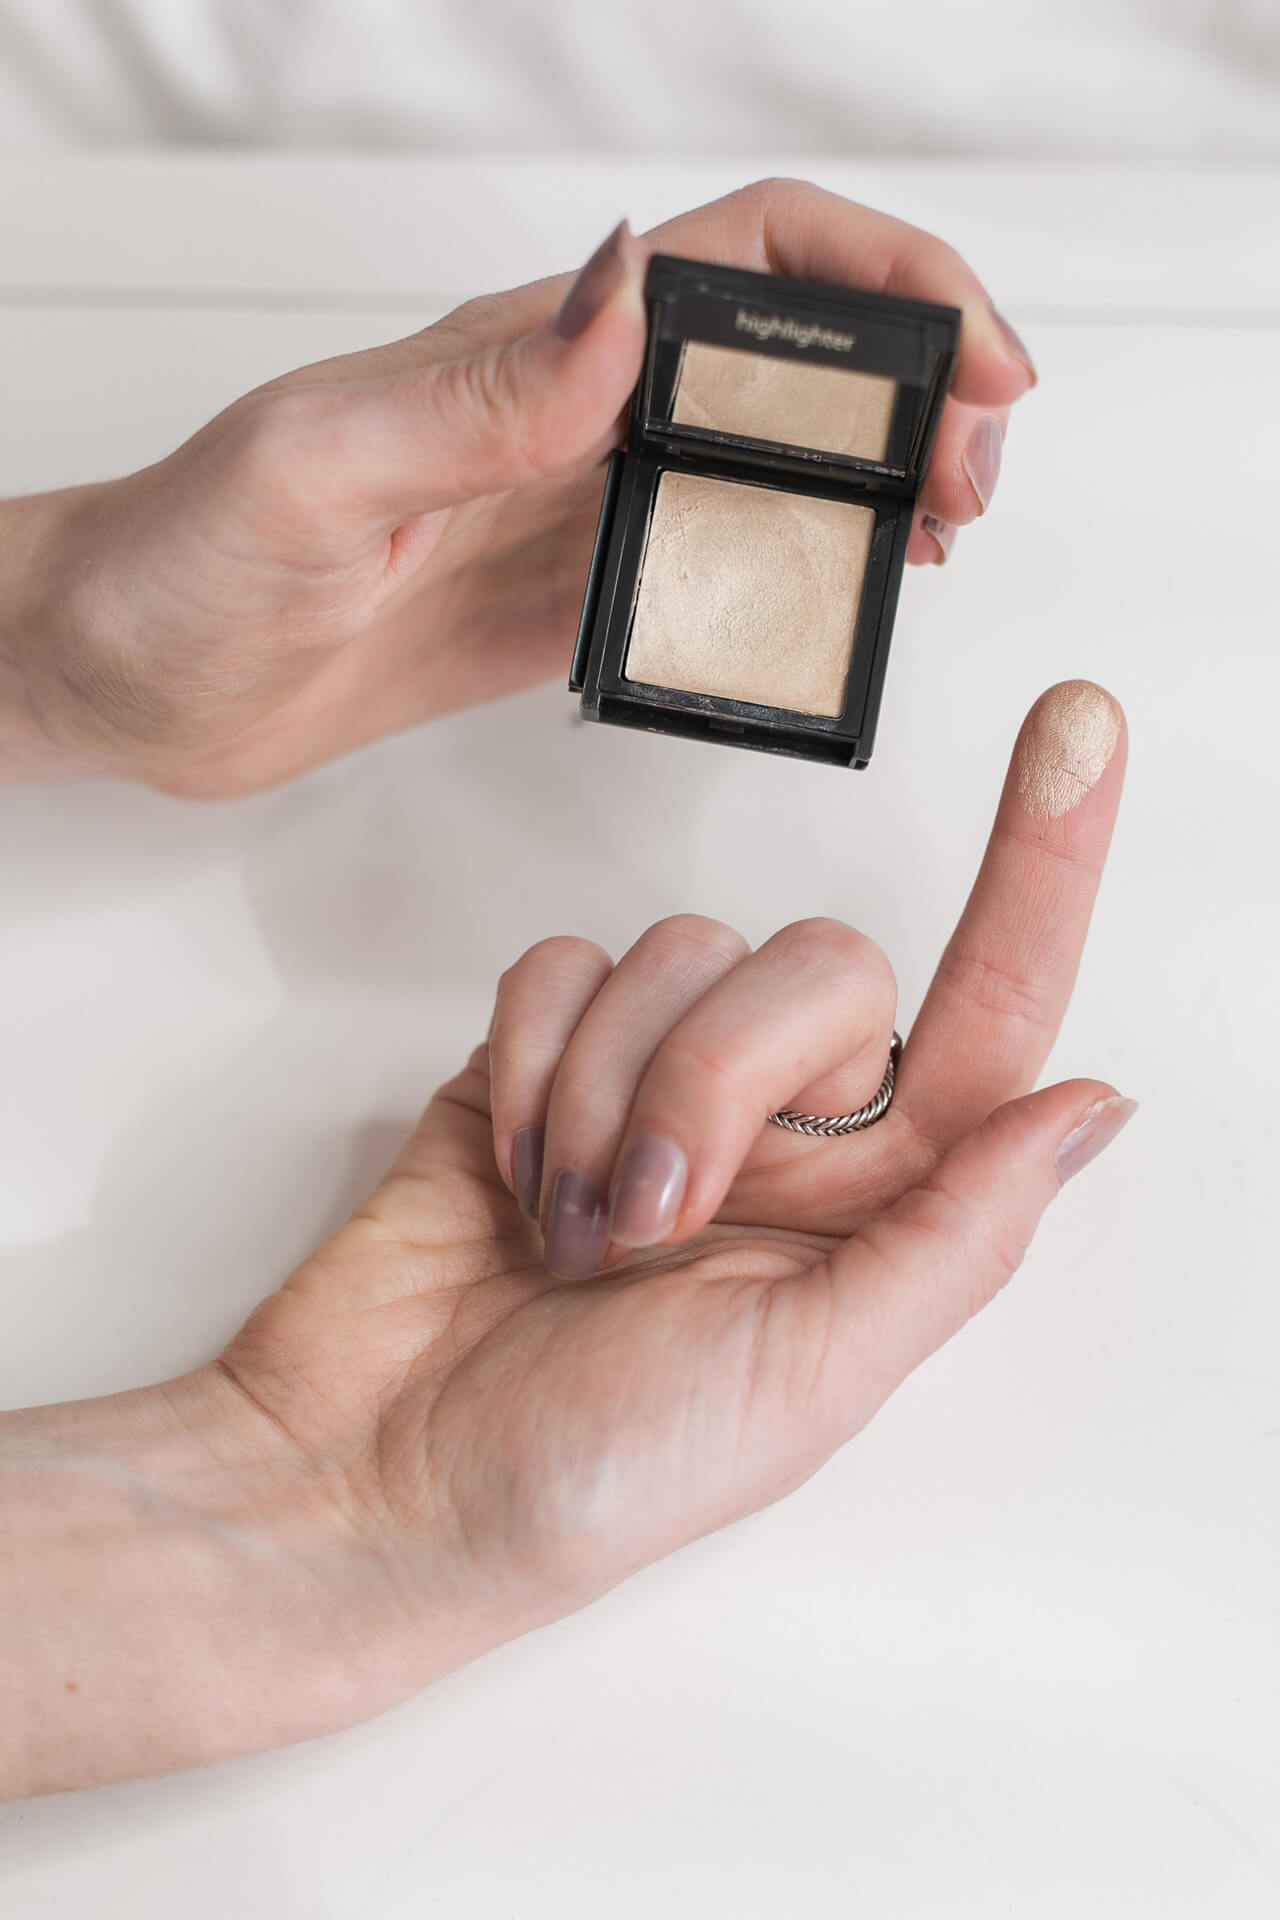 jouer highlighter in tiare review